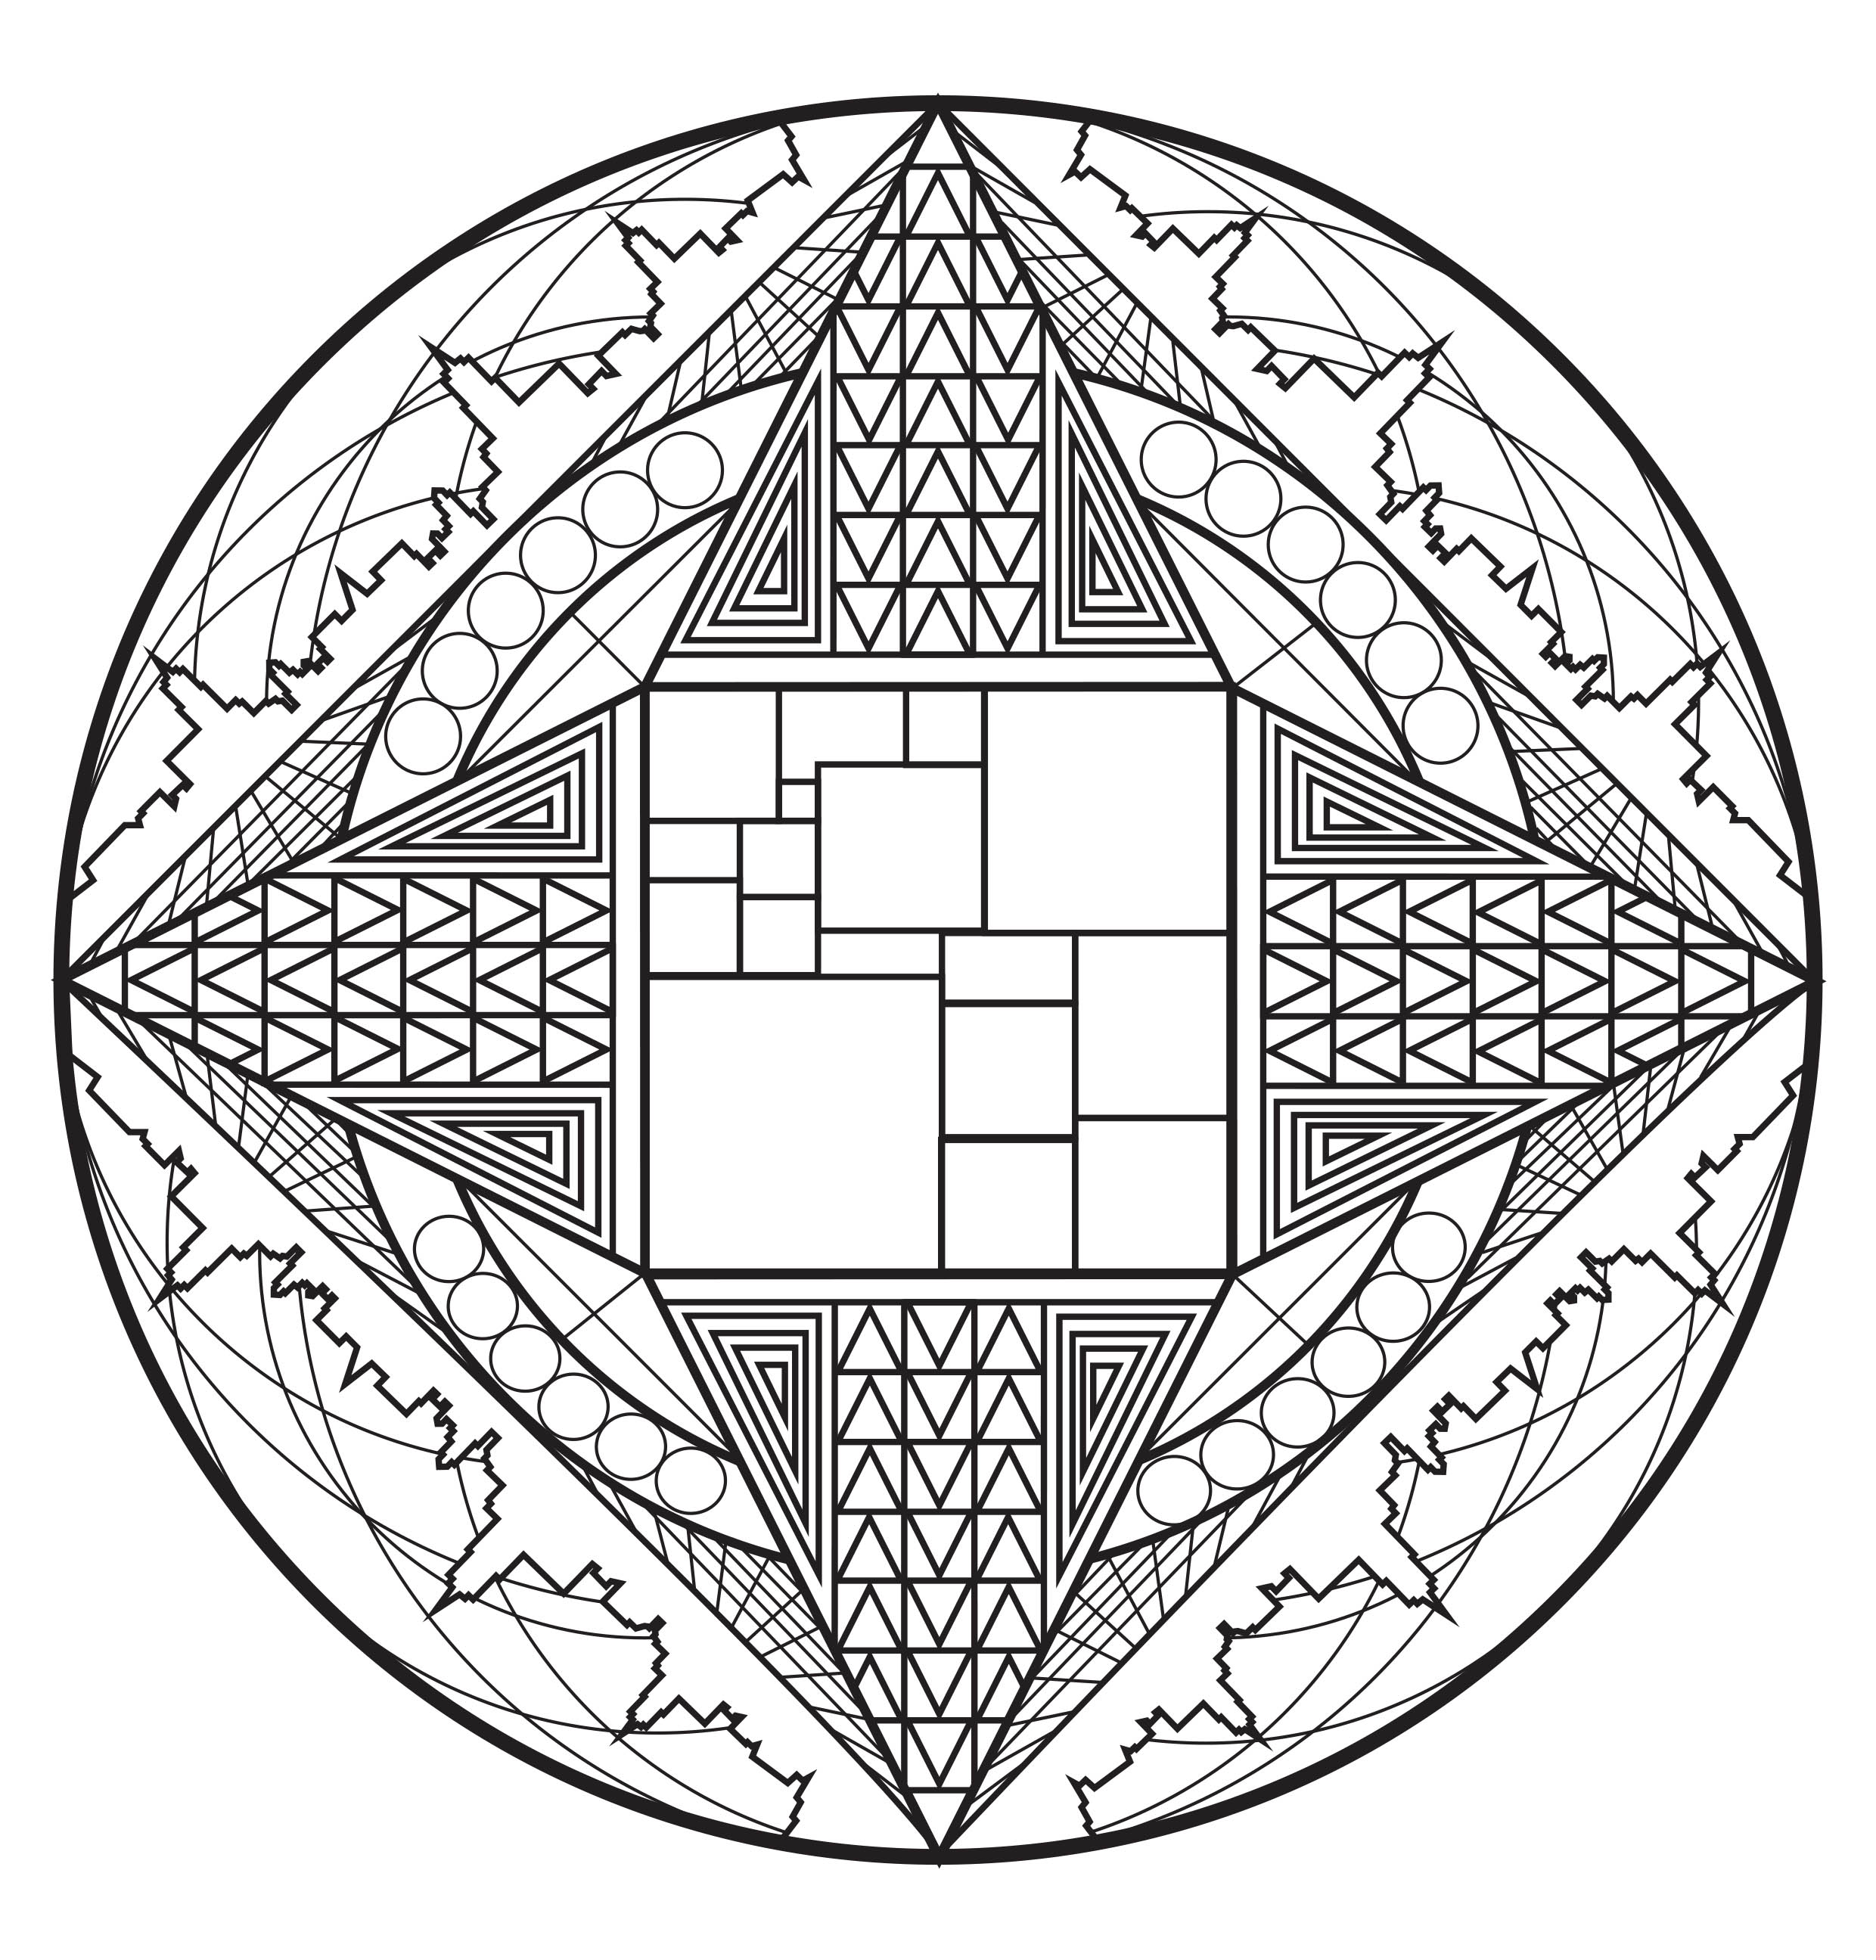 Color this mandala and its shapes reminiscent of the American skyscrapers